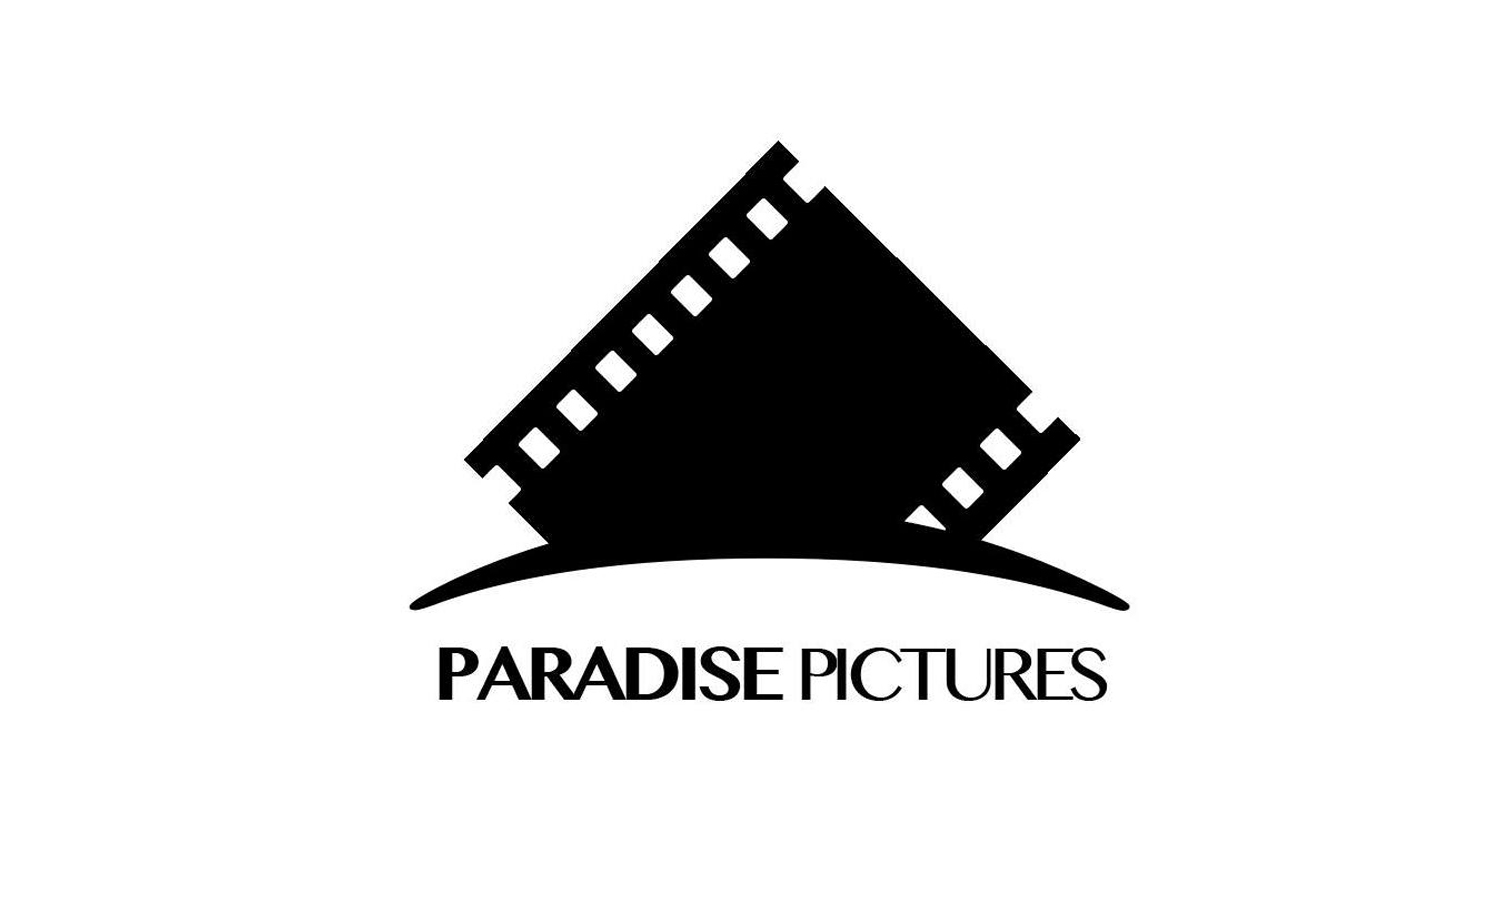 PARADISE PICTURES